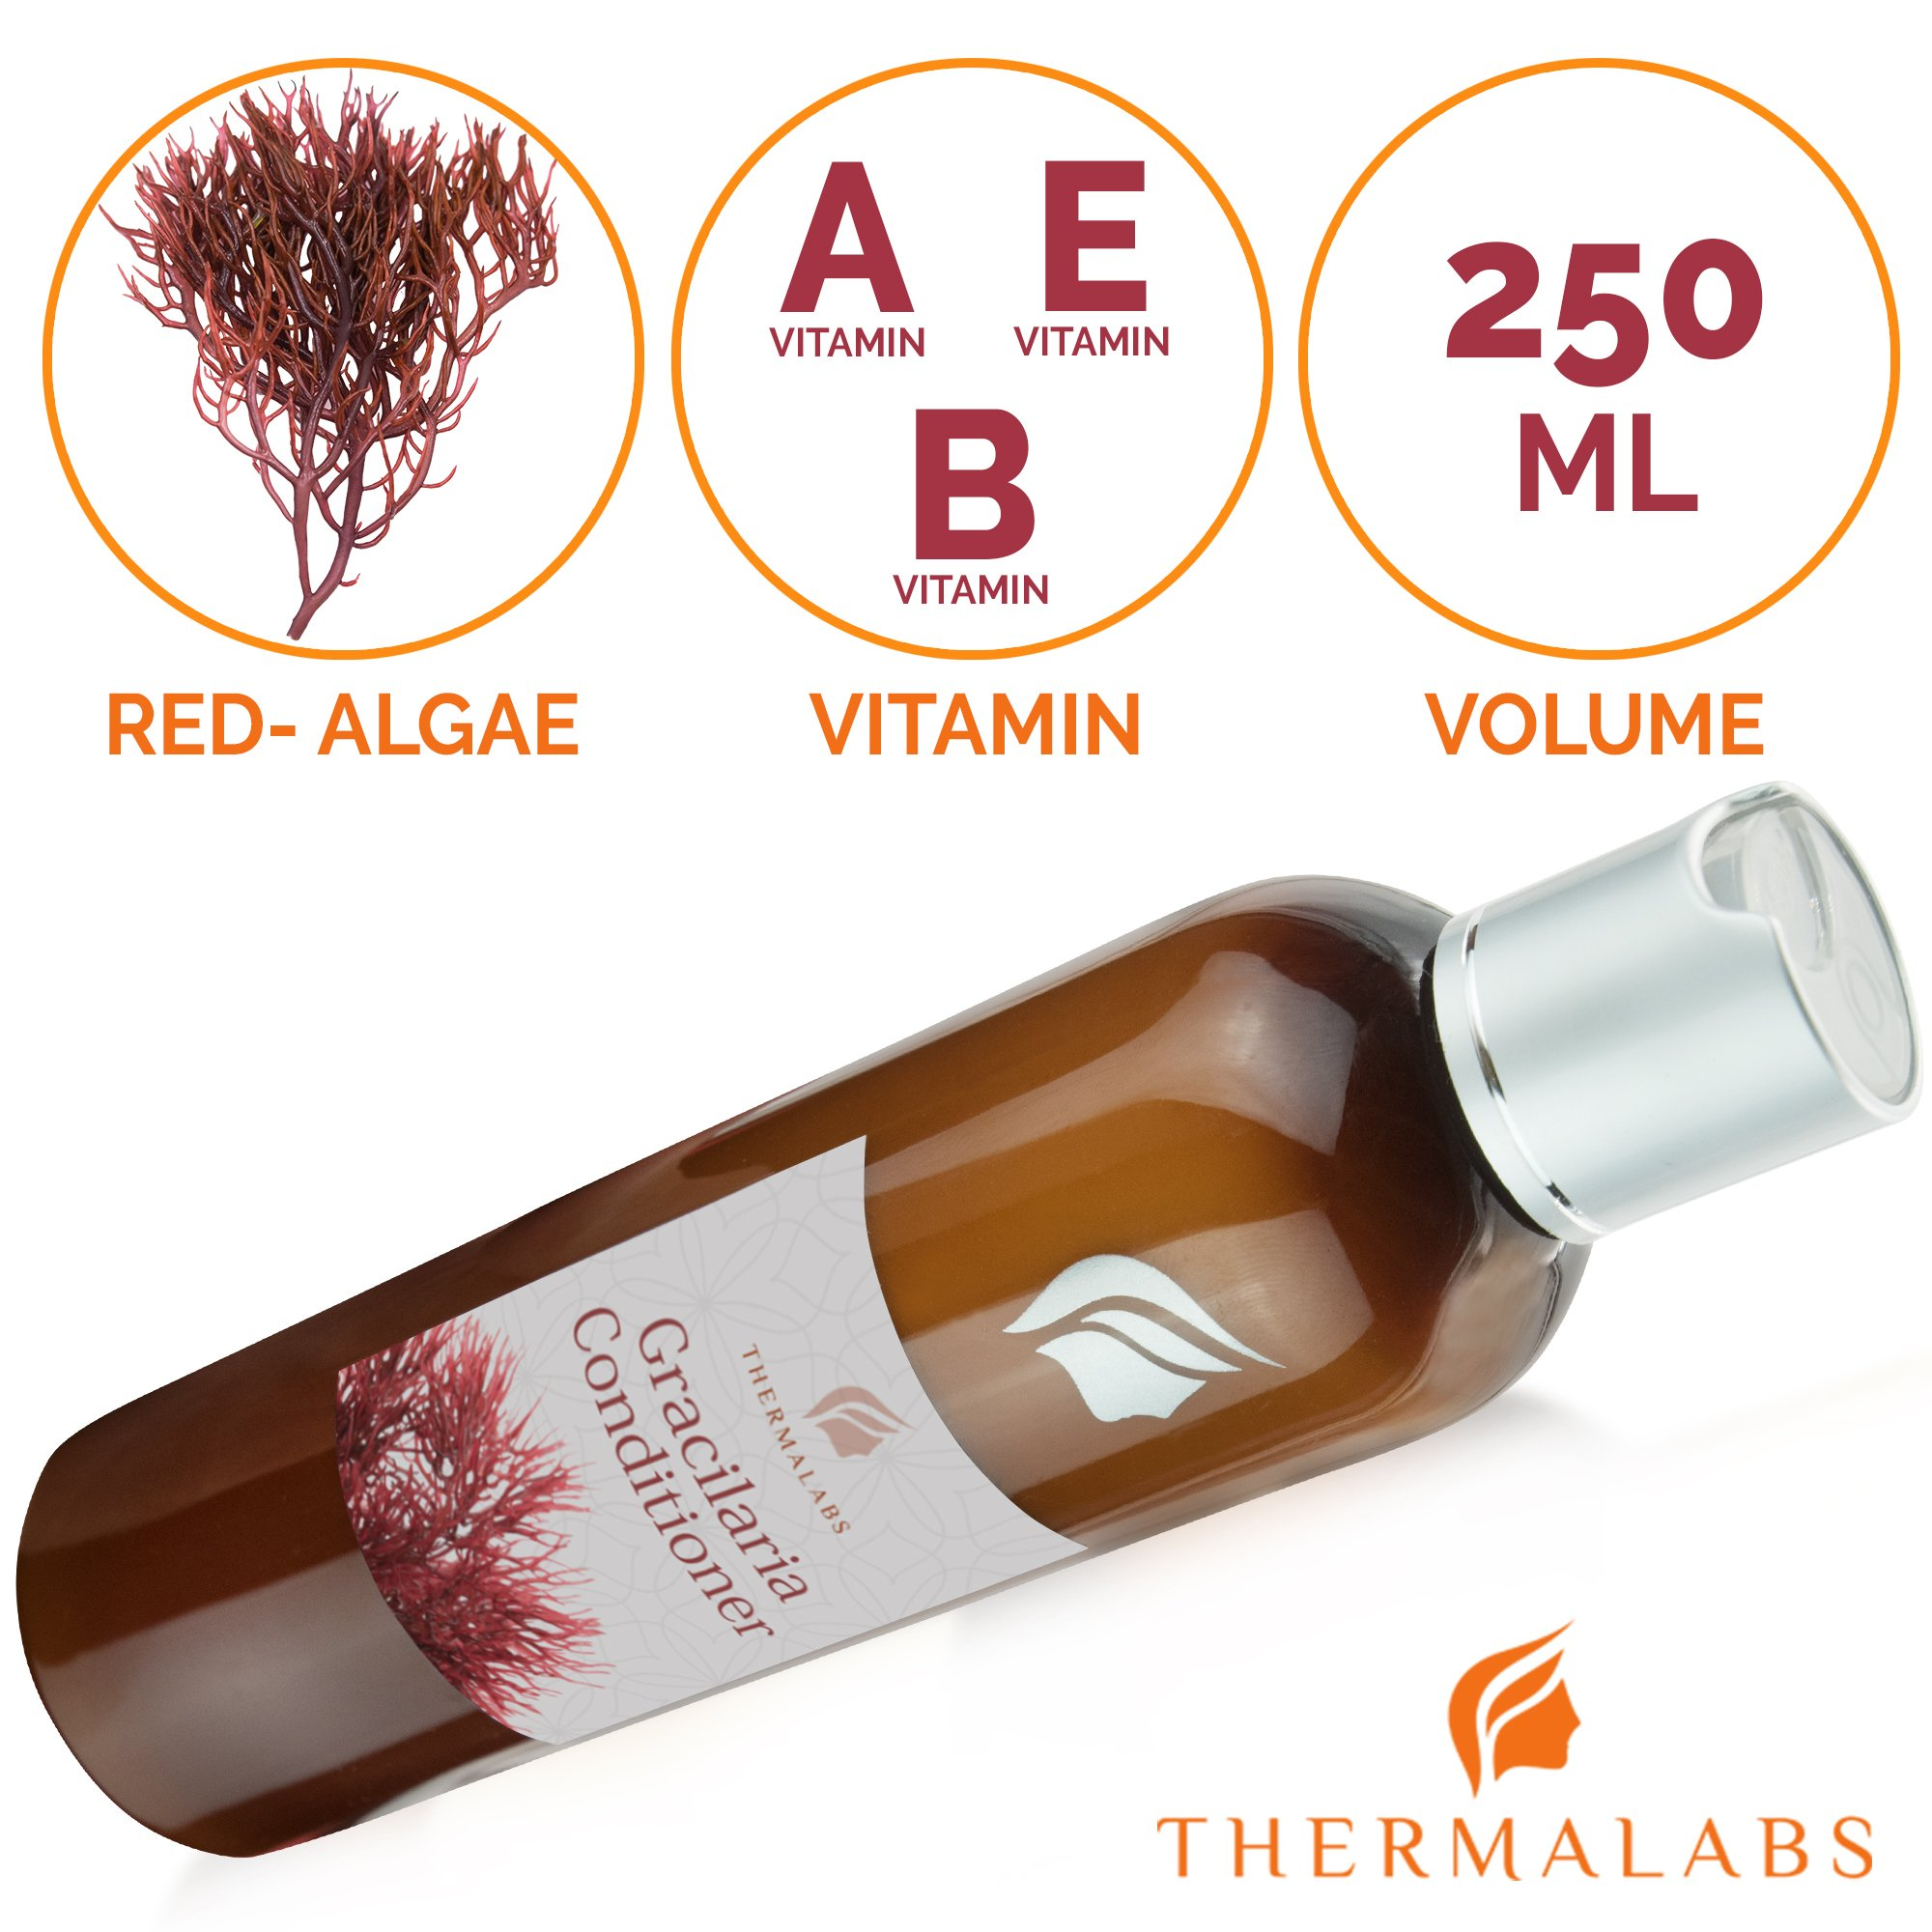 Hair Loss Treatment Conditioner, Natural Organic Thickening Volumnizing Haircare Ointment for Men & Women. Algae Treatment for Receding Hairline & Dandruff, Regrowth Therapy: Have Healthy Hair by Thermalabs (Image #7)